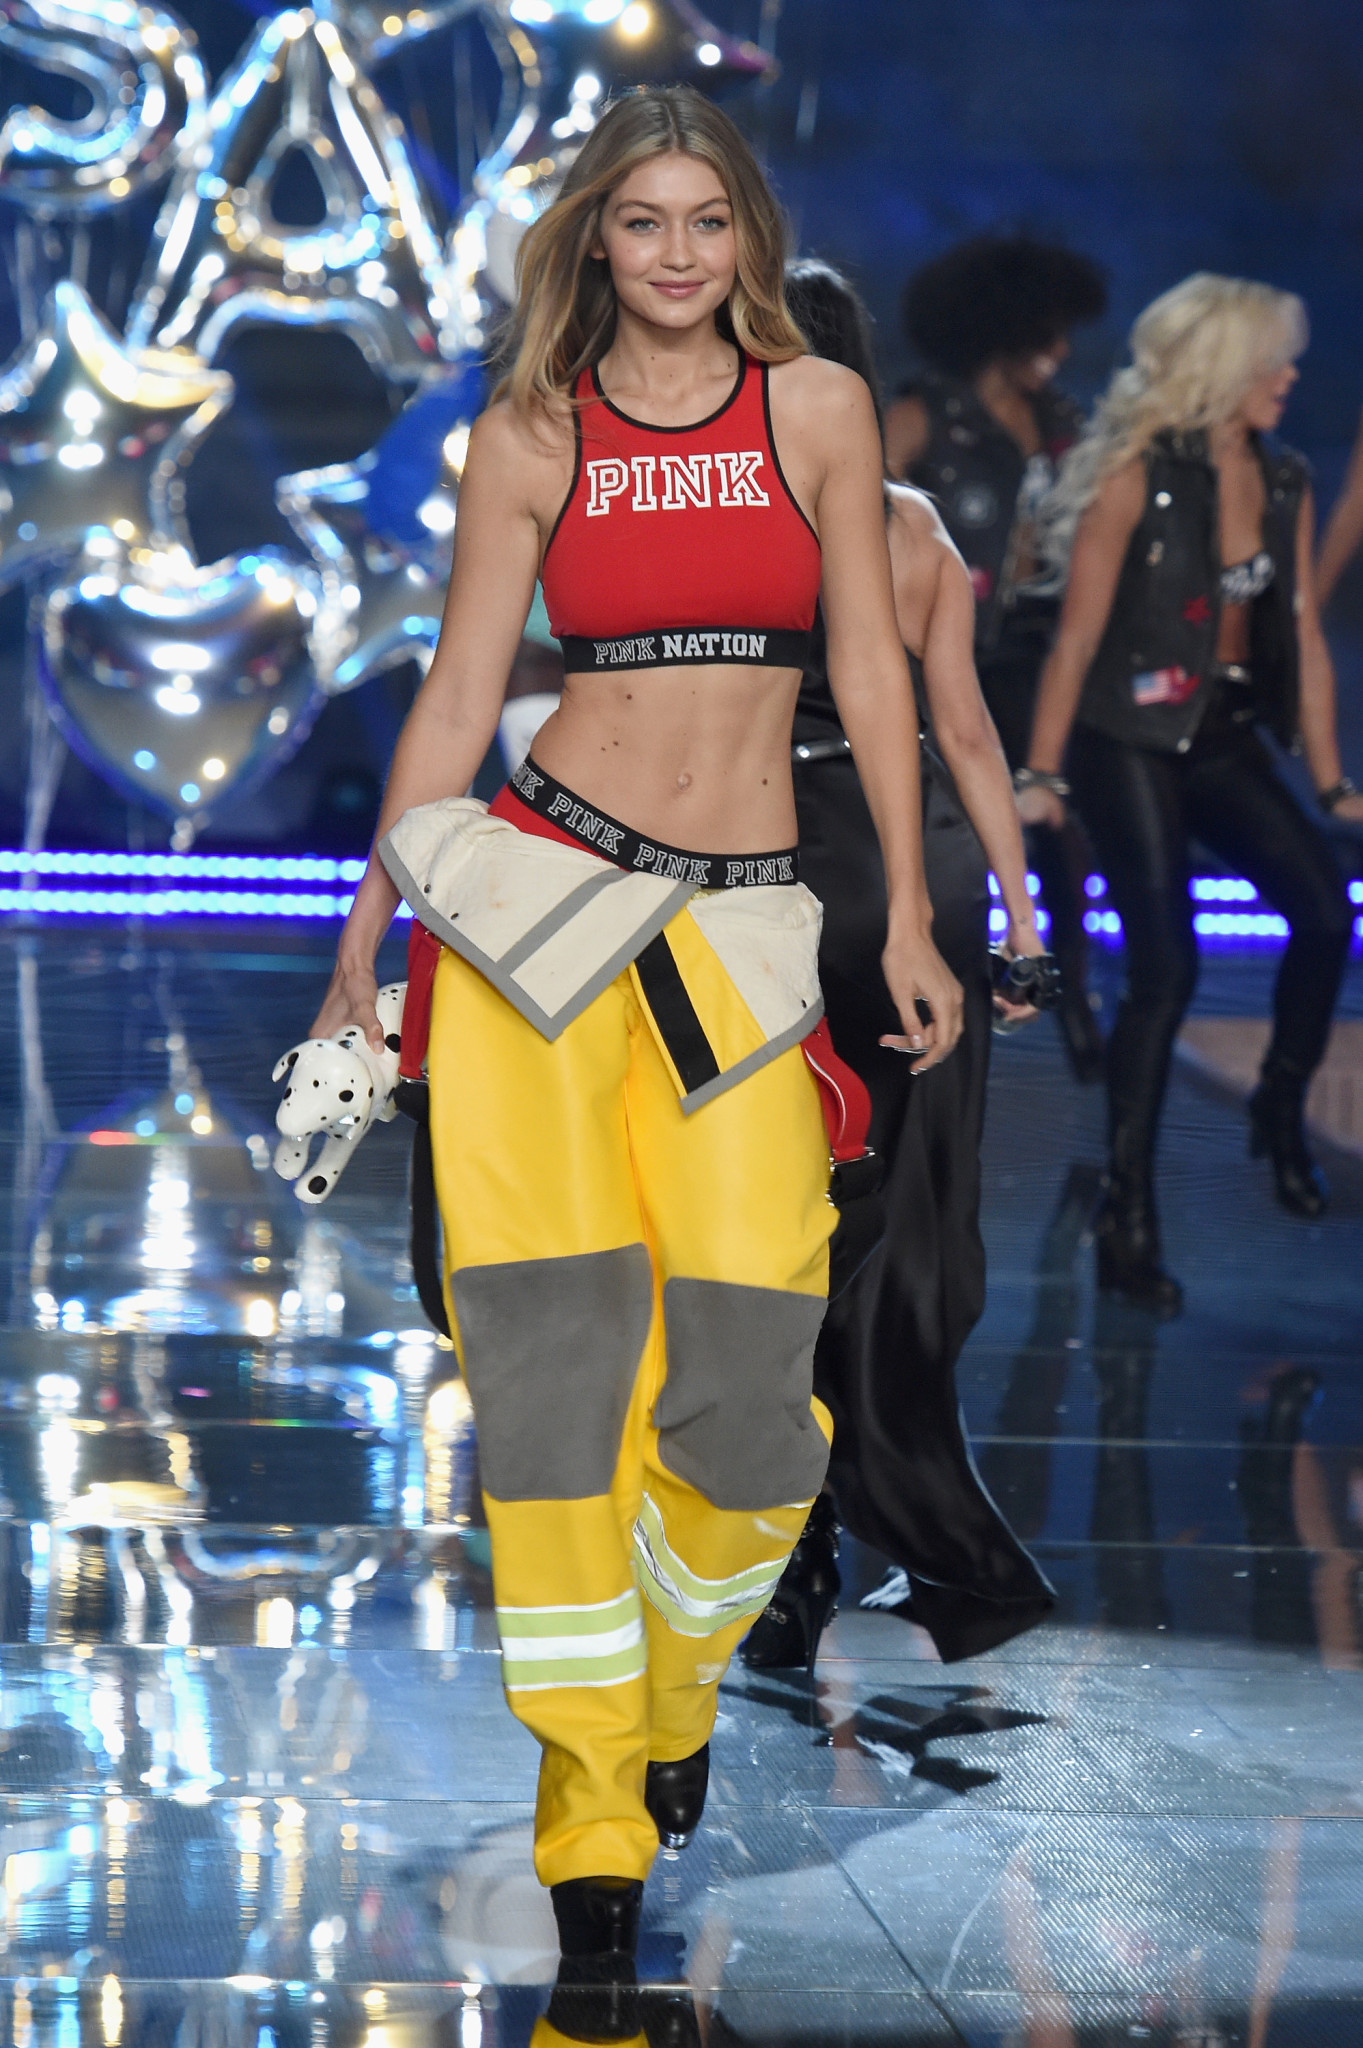 NEW YORK, NY - NOVEMBER 10: Model Gigi Hadid from California walks the runway during the 2015 Victoria's Secret Fashion Show at Lexington Avenue Armory on November 10, 2015 in New York City. (Photo by Dimitrios Kambouris/Getty Images for Victoria's Secret) *** Local Caption *** Gigi Hadid